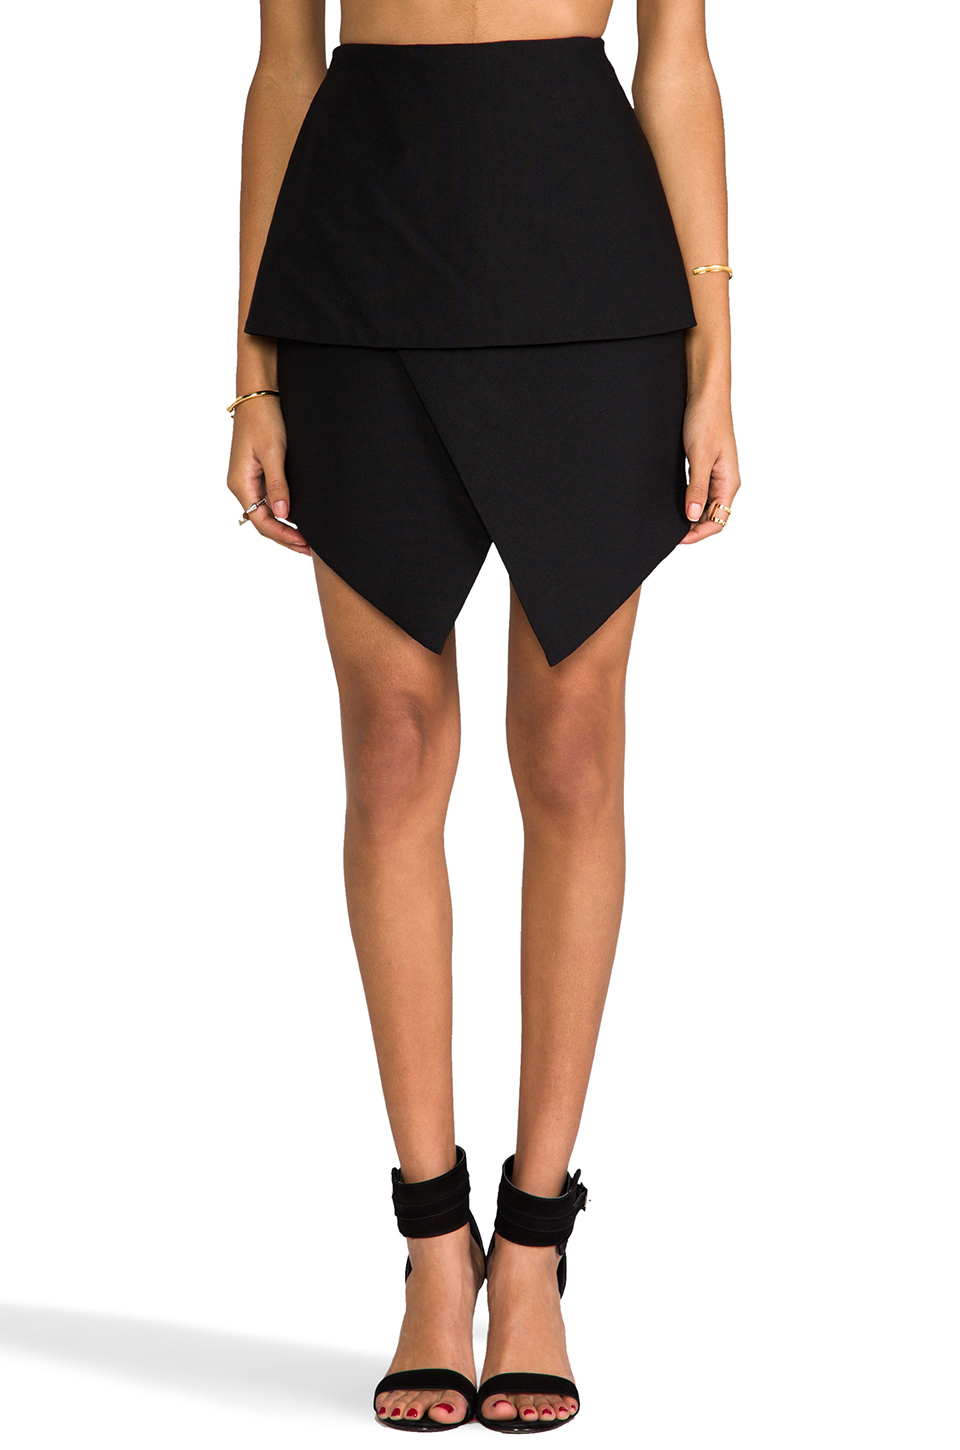 Cameo New Light Skirt in Black | REVOLVE